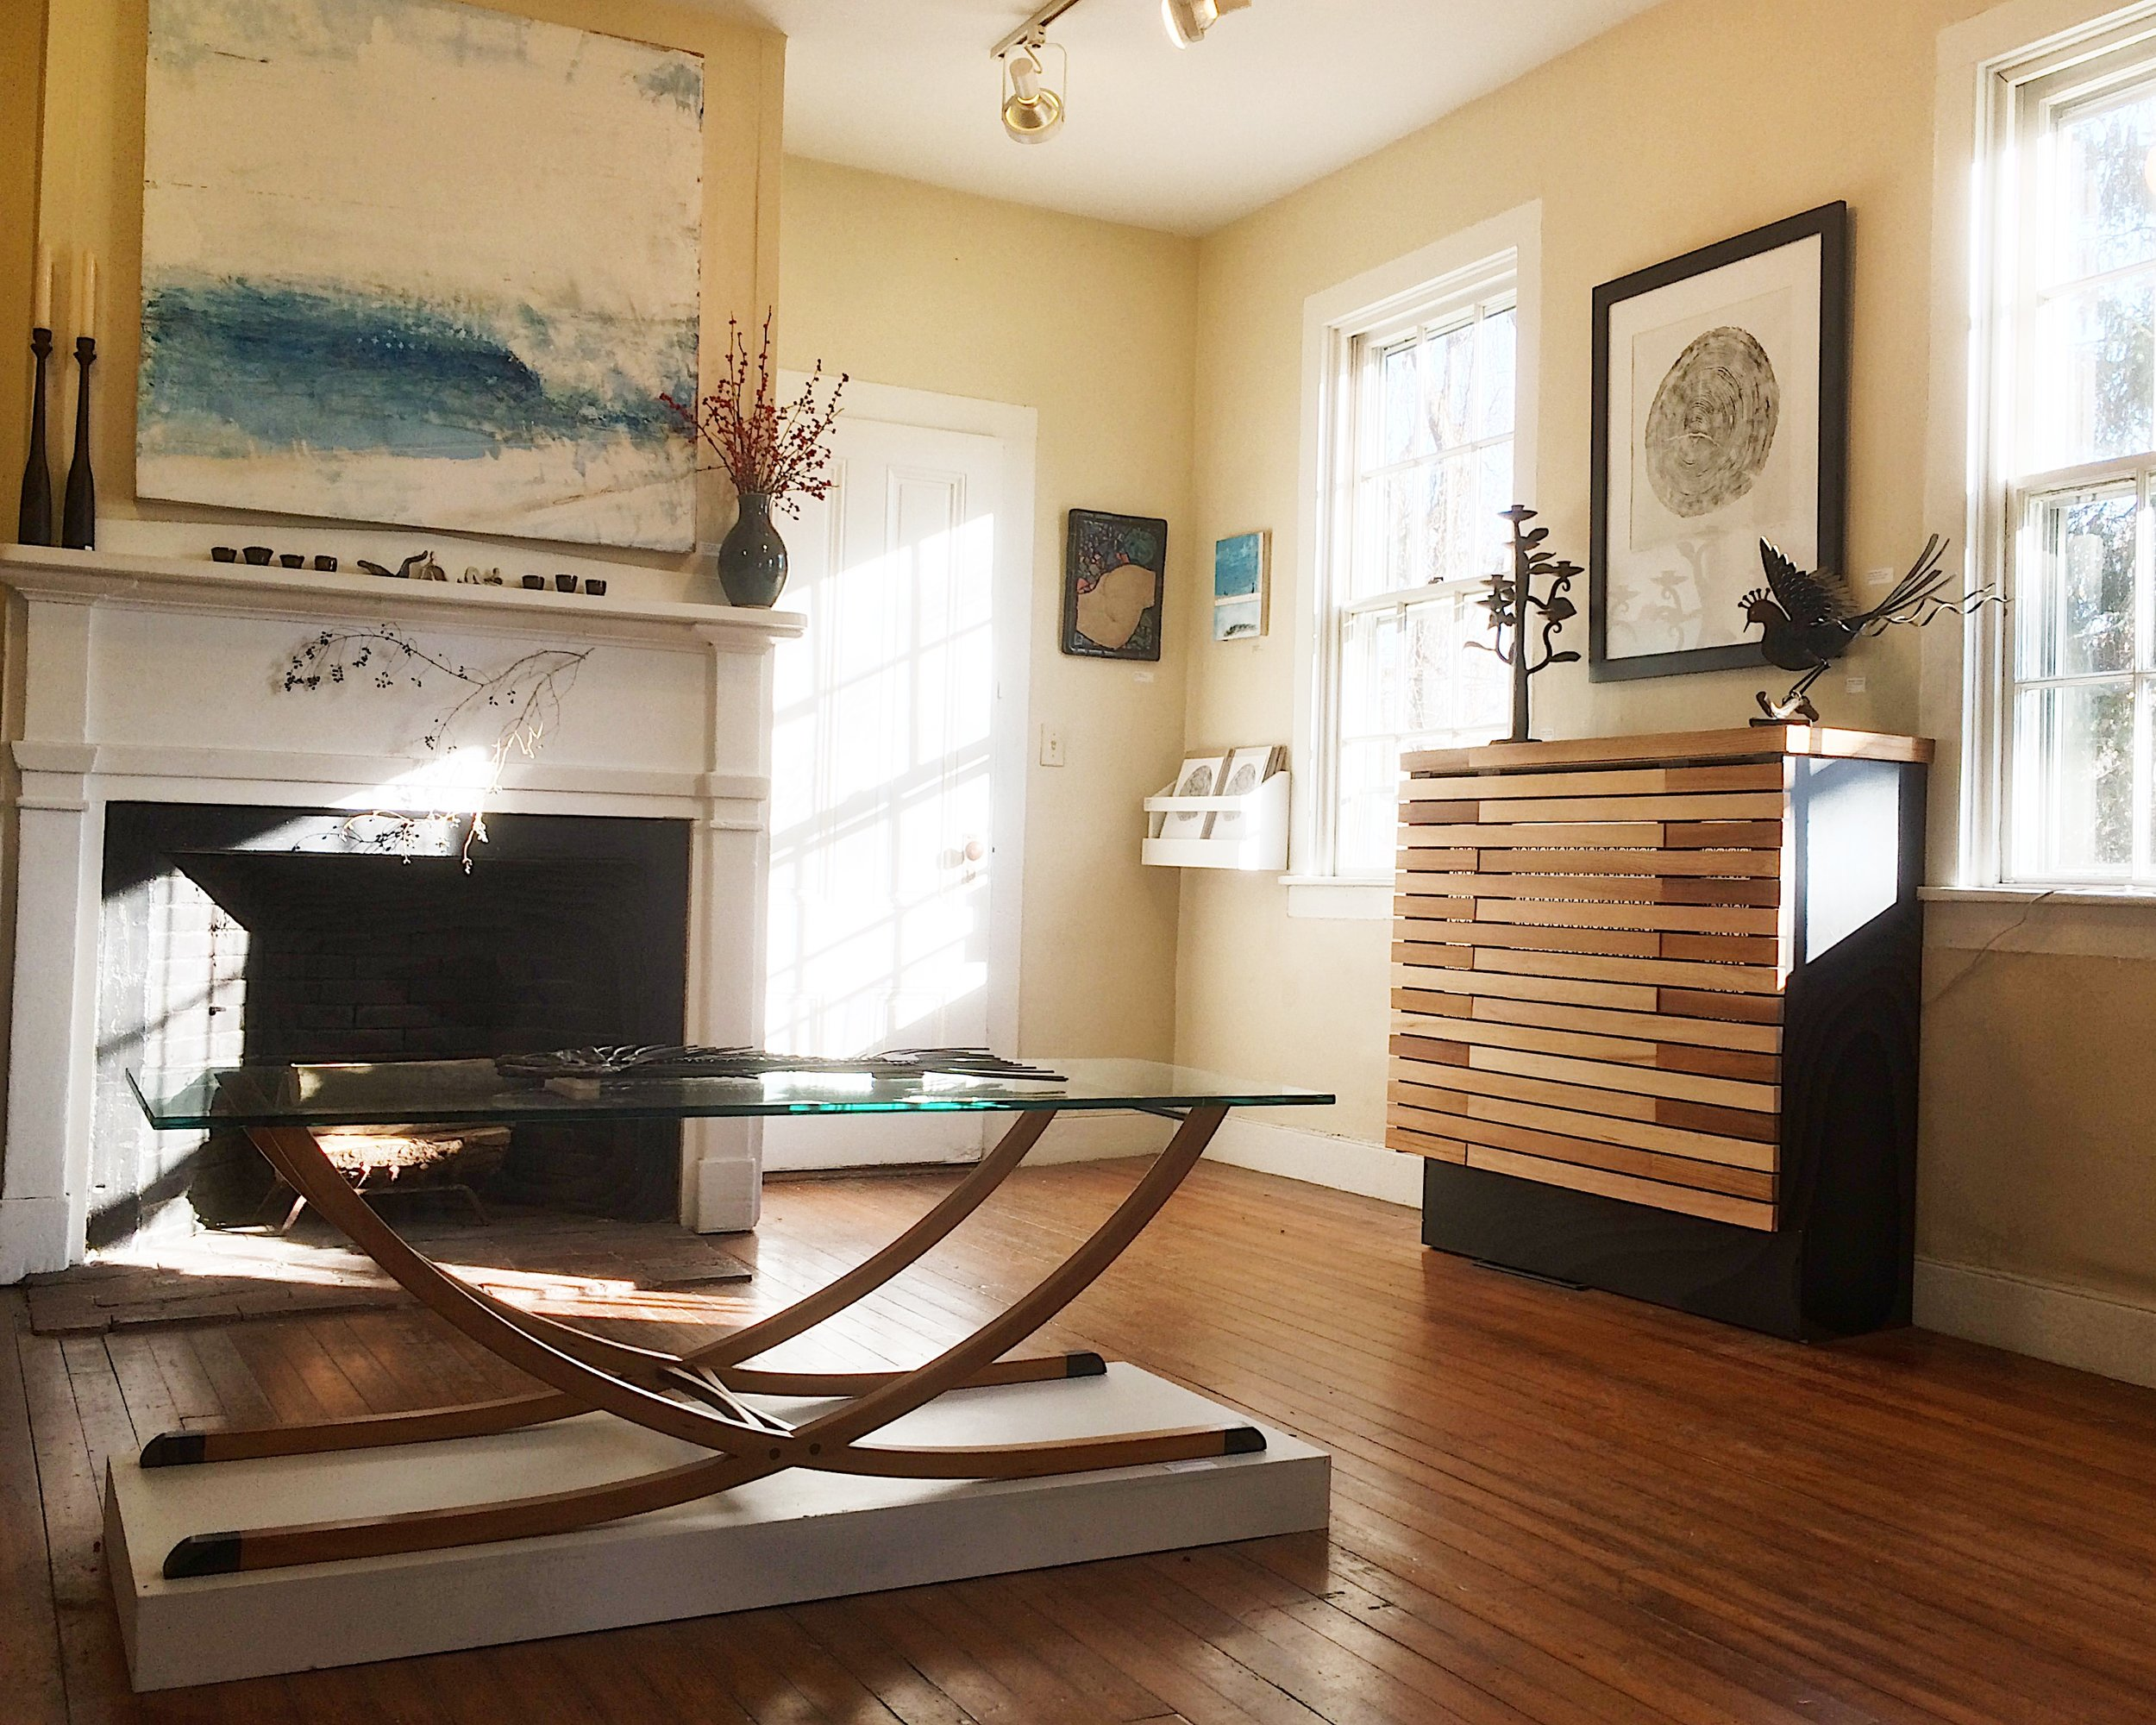 THE GODECK COFFEE TABLE ON DISPLAY AT    THE SAKONNET COLLECTIVE    GALLERY